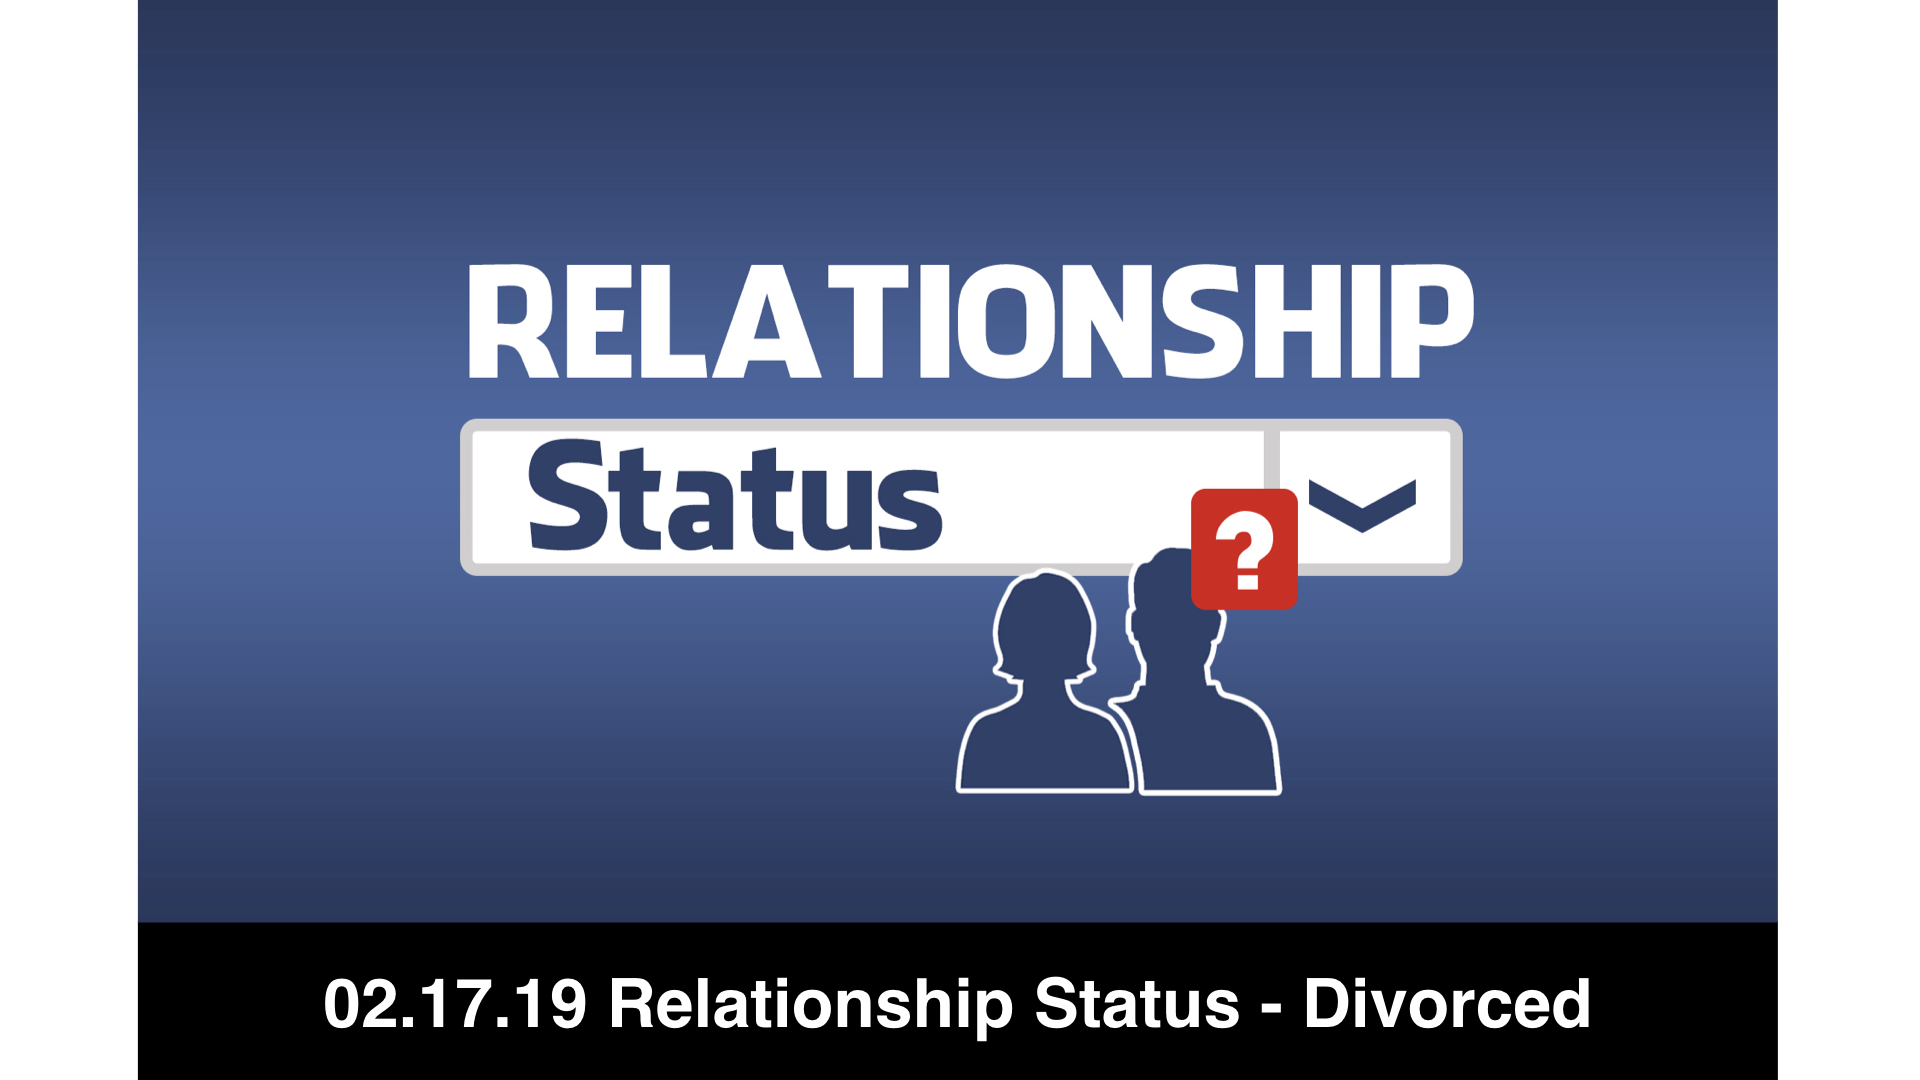 02-17-19 Relationship Status 3 - Divorce